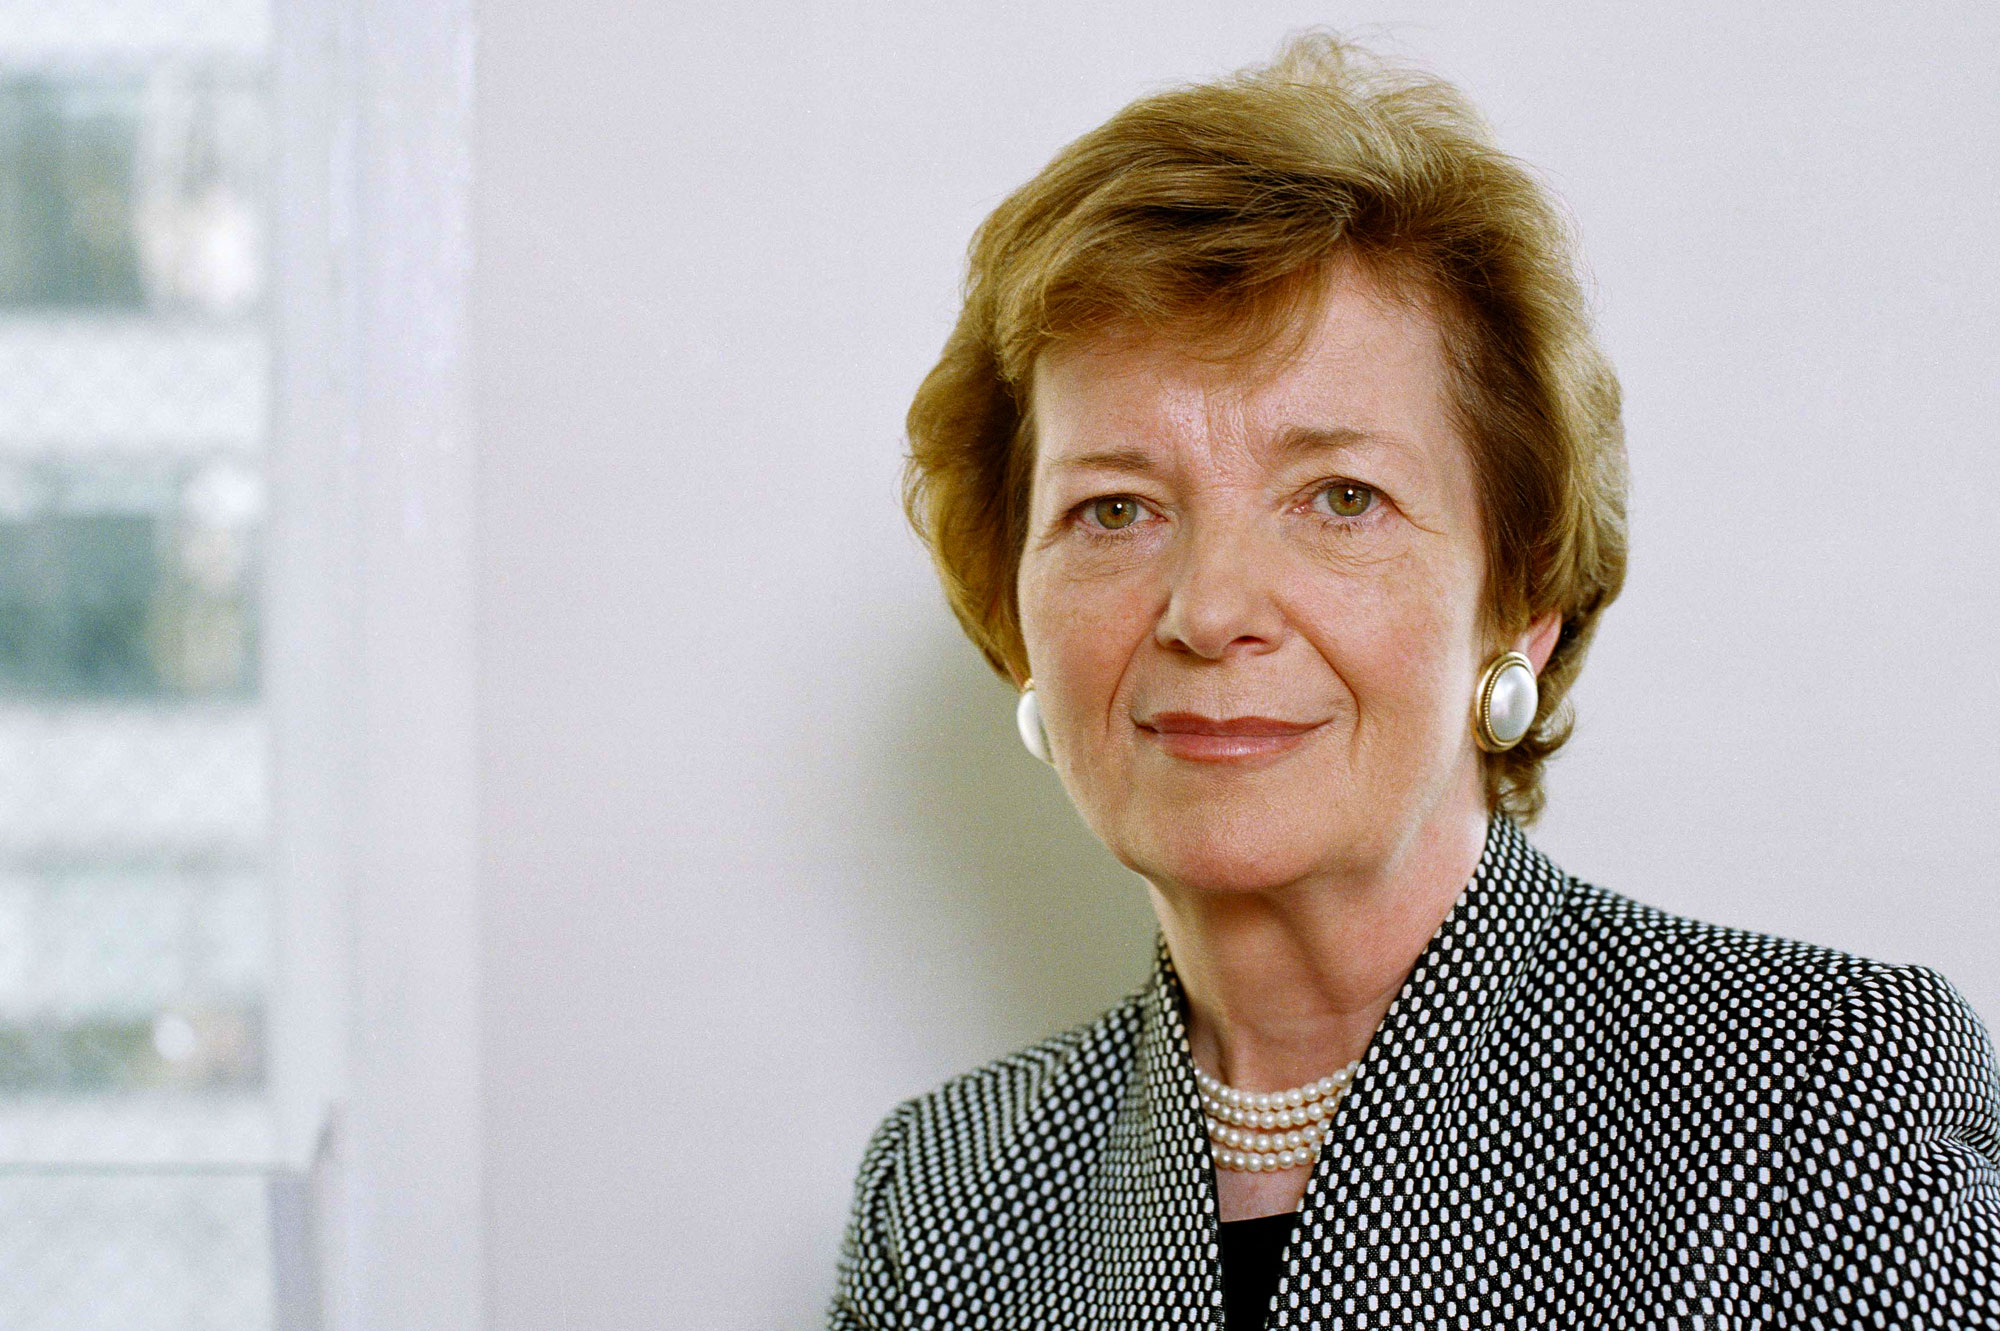 Statement from Mary Robinson on the Publication of the report of WG3 of IPCC